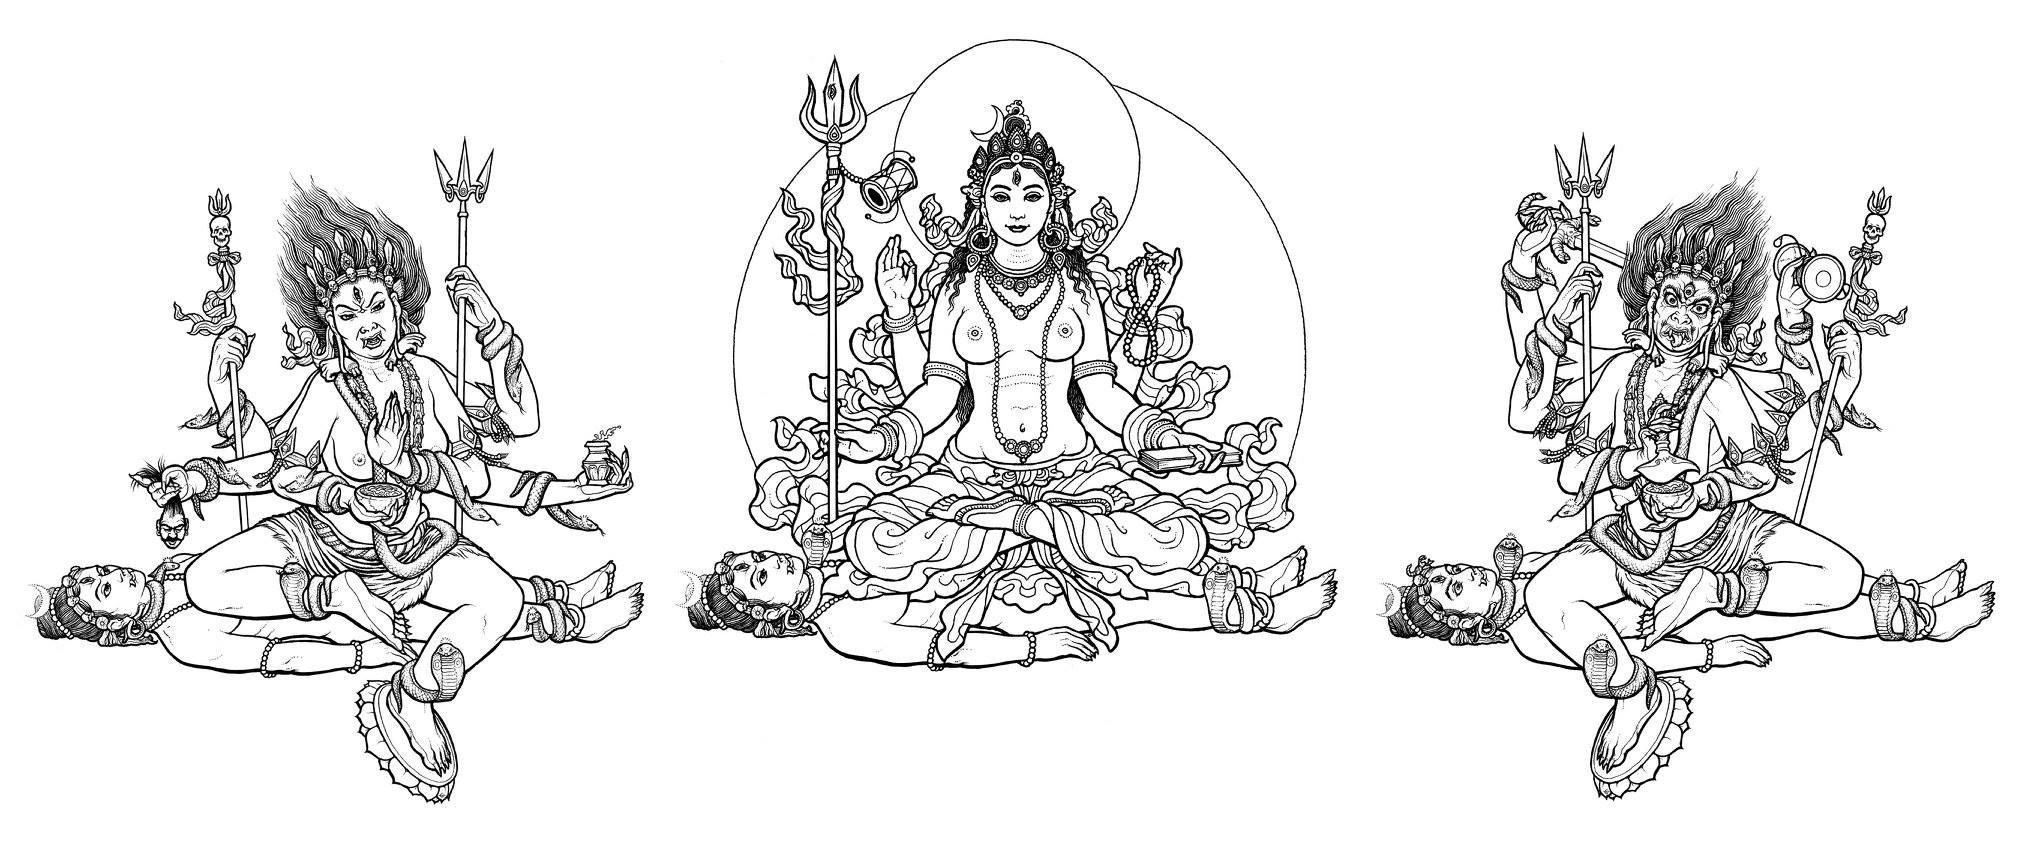 The anthropomorphized representation of the three central Powers, Parāparā, Parā, and Aparā. Art by Ekabhūmi Ellik, appearing in  Tantra Illuminated  by Christopher Wallis.